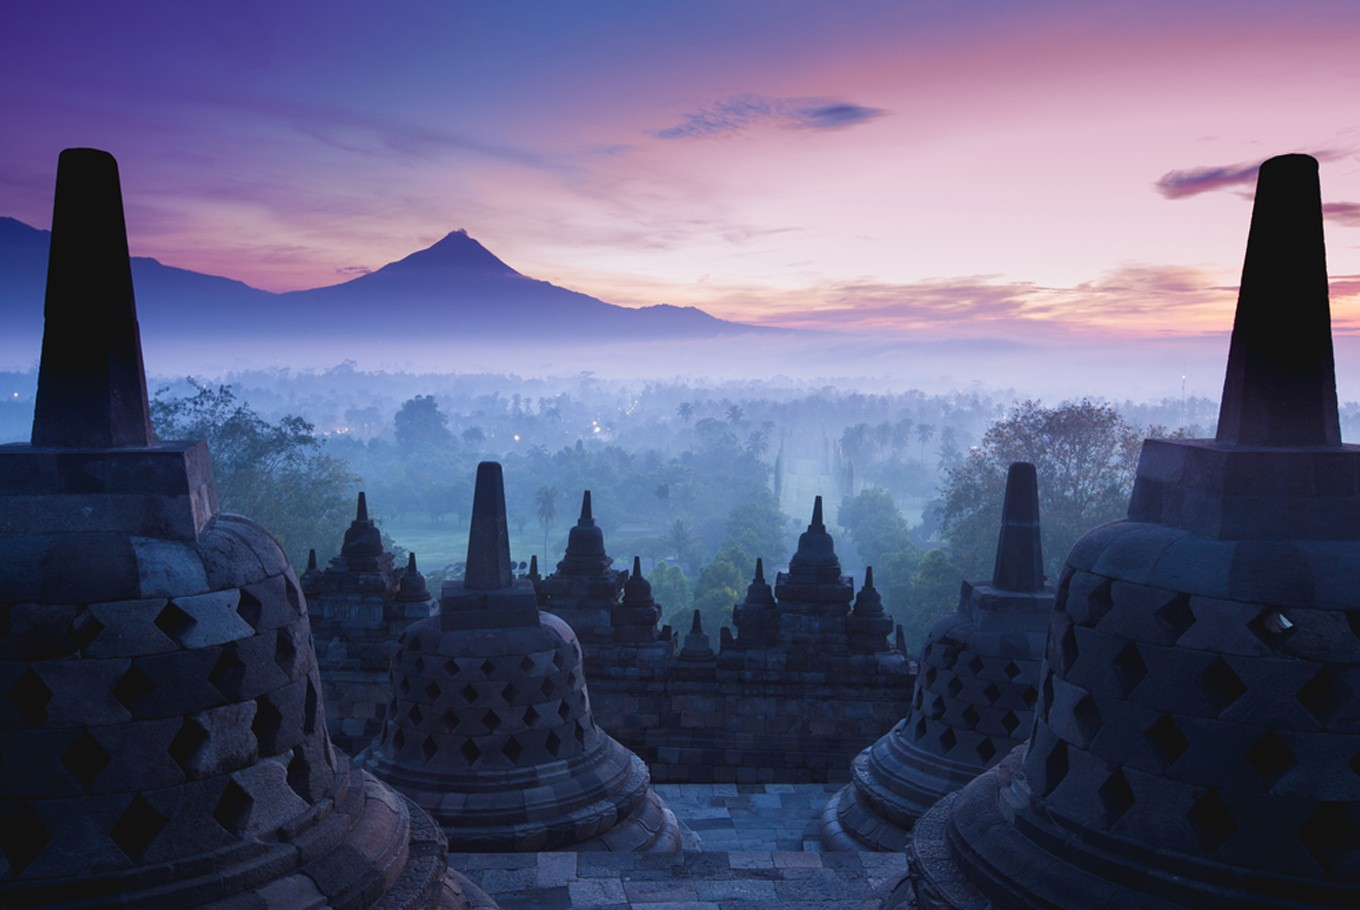 Borobudur sprayed with disinfectant, closed to public until late March